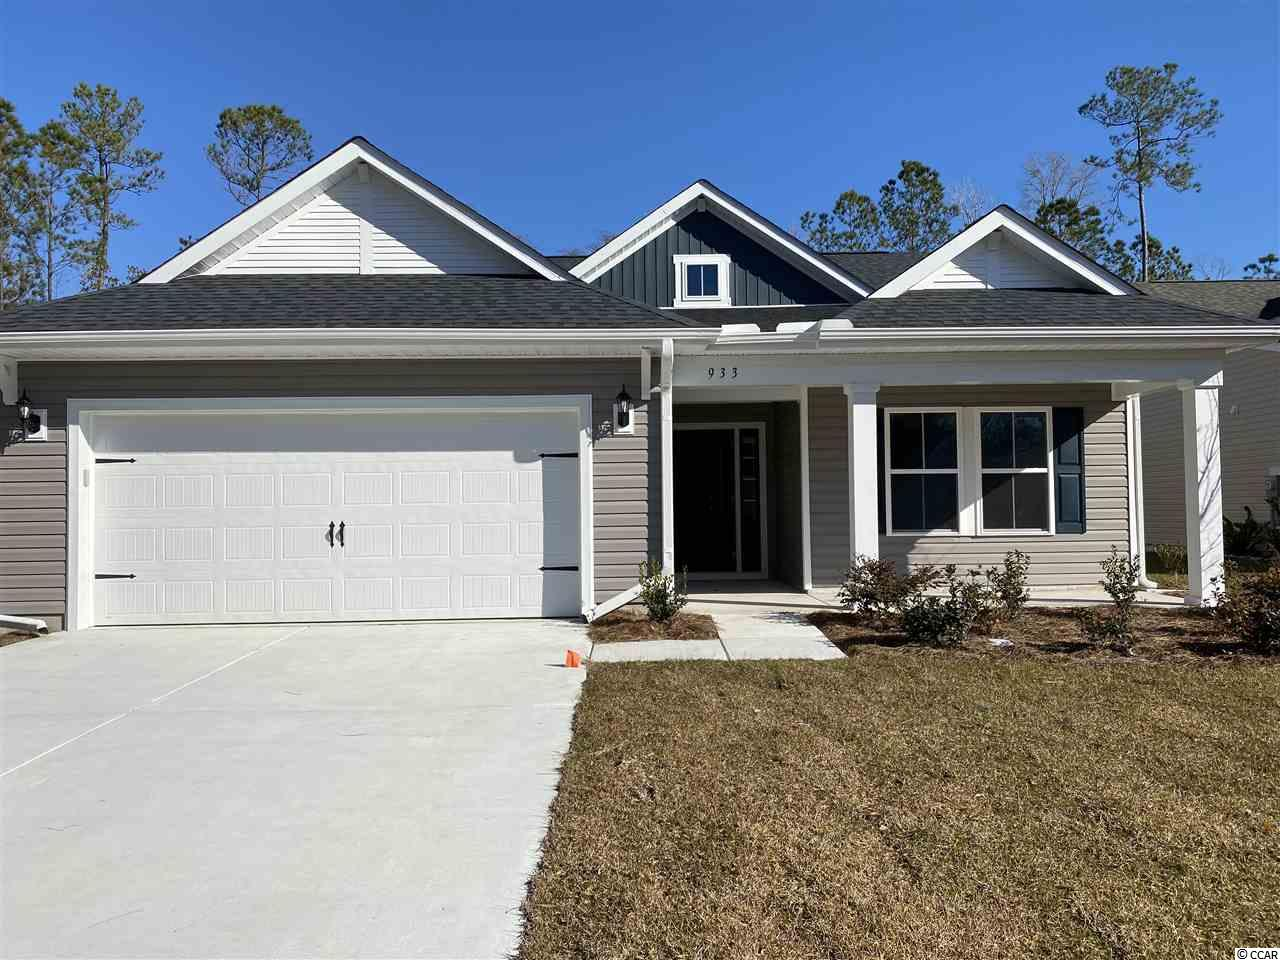 Palmetto Floorplan with added Bonus Room and 3rd Bathroom. Visit Palm Lakes in Little River to design your new home. We have 7 floor plans to choose from.